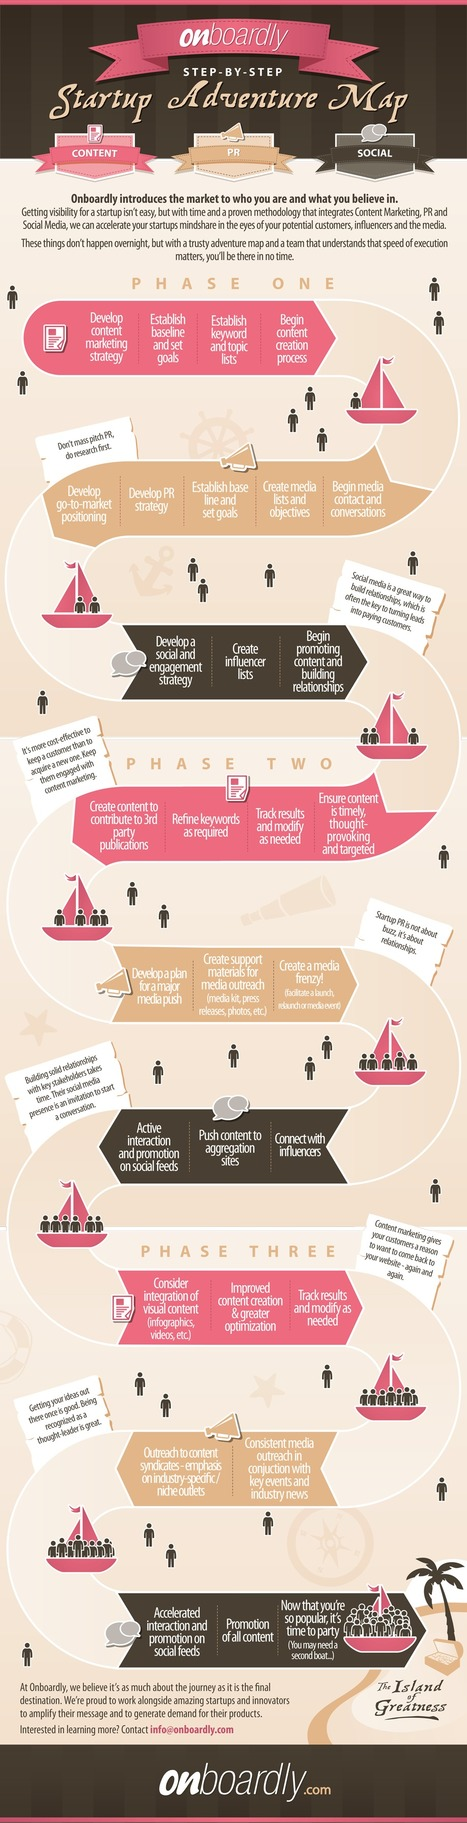 Steps On How to Acquire Customers For Your Startup [INFOGRAPHIC] | | Learning Happens Everywhere! | Scoop.it